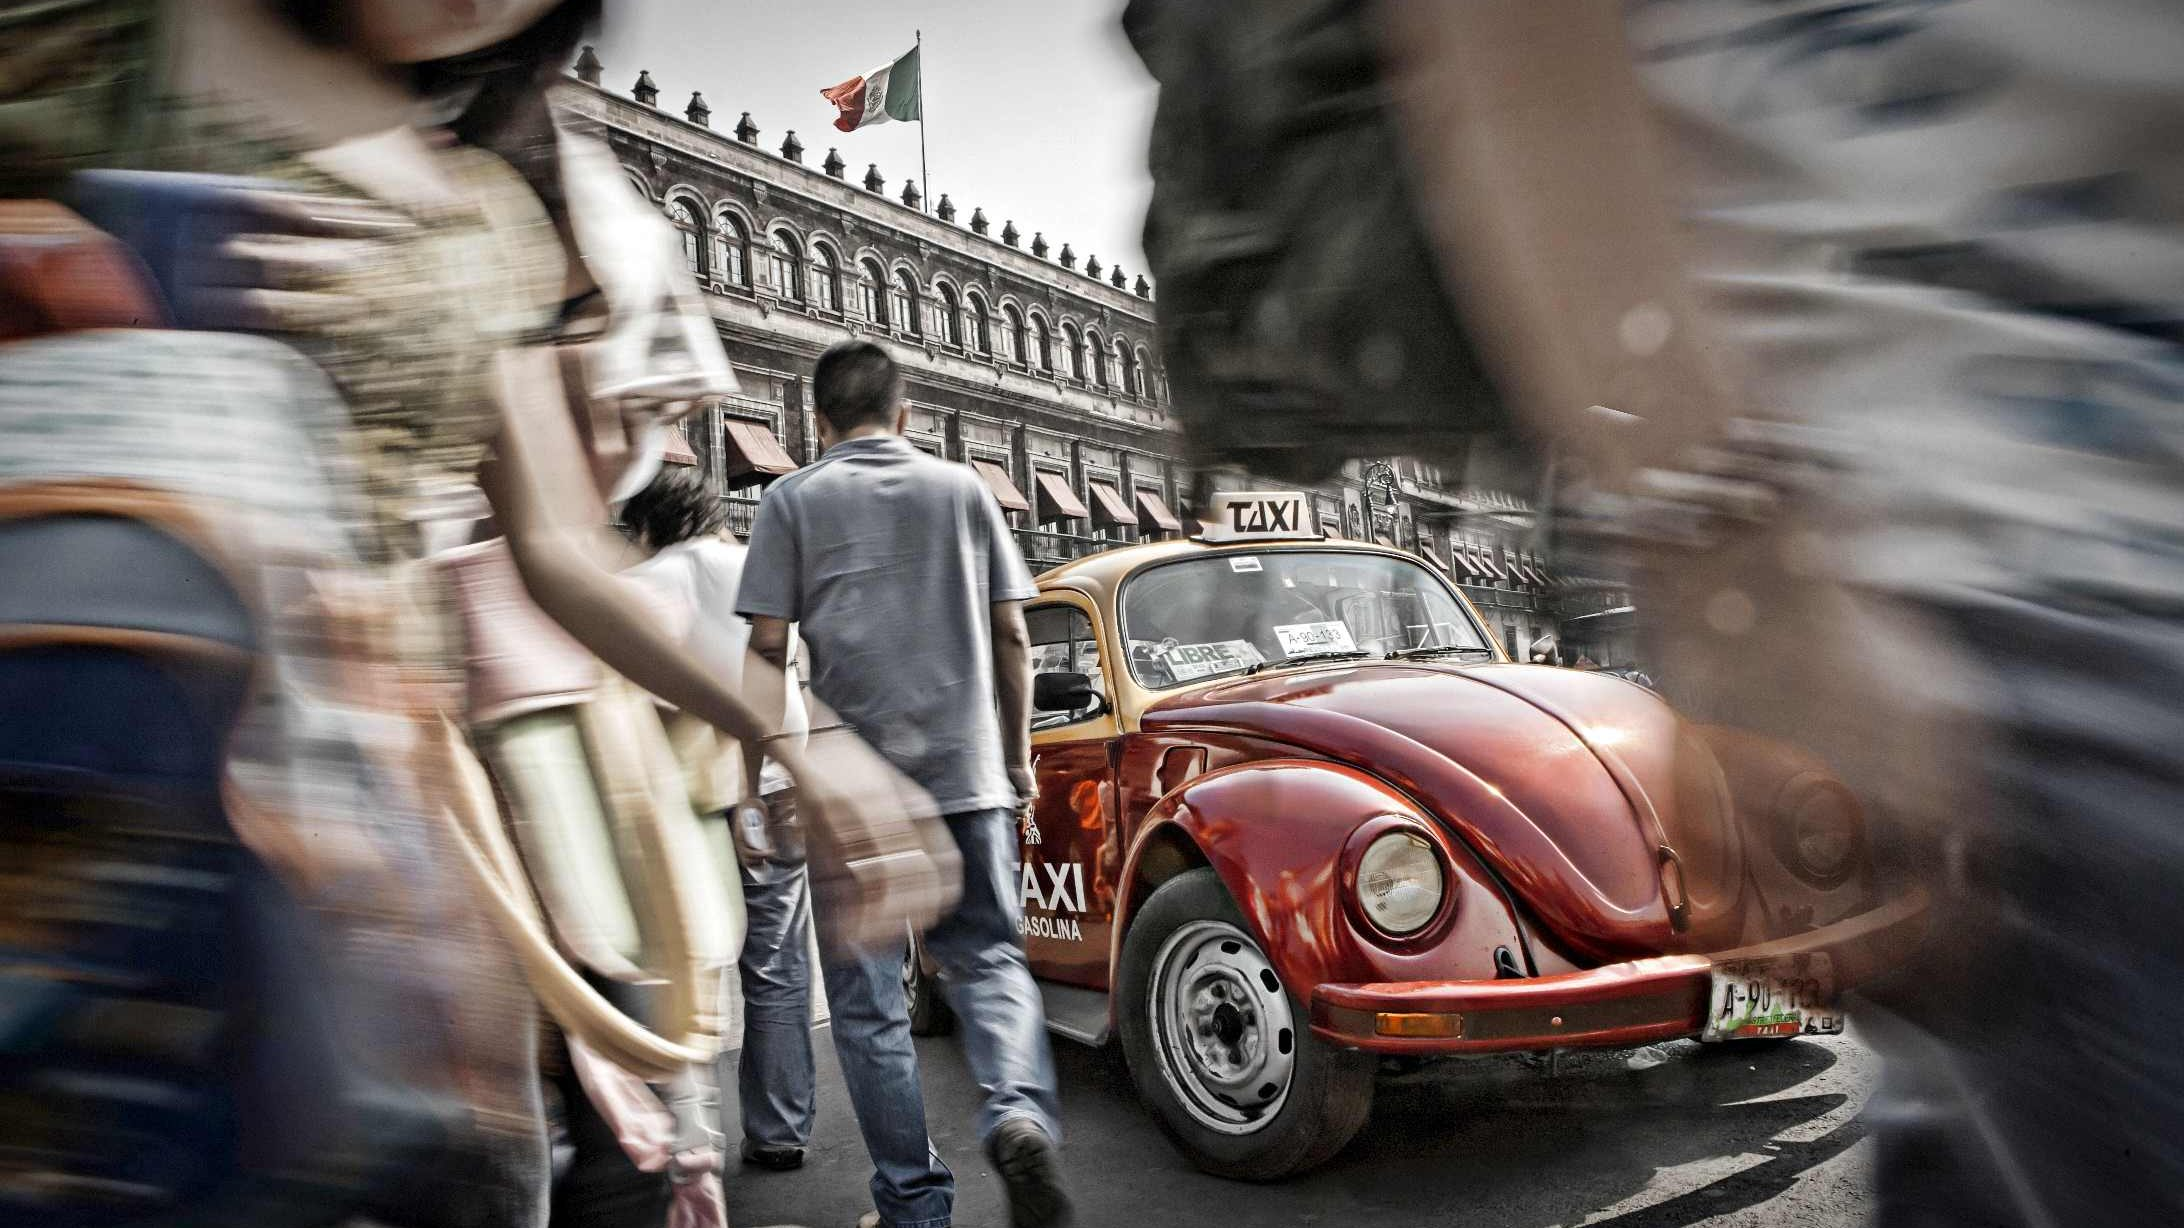 Image for Mexico City – glavni grad VW Bube